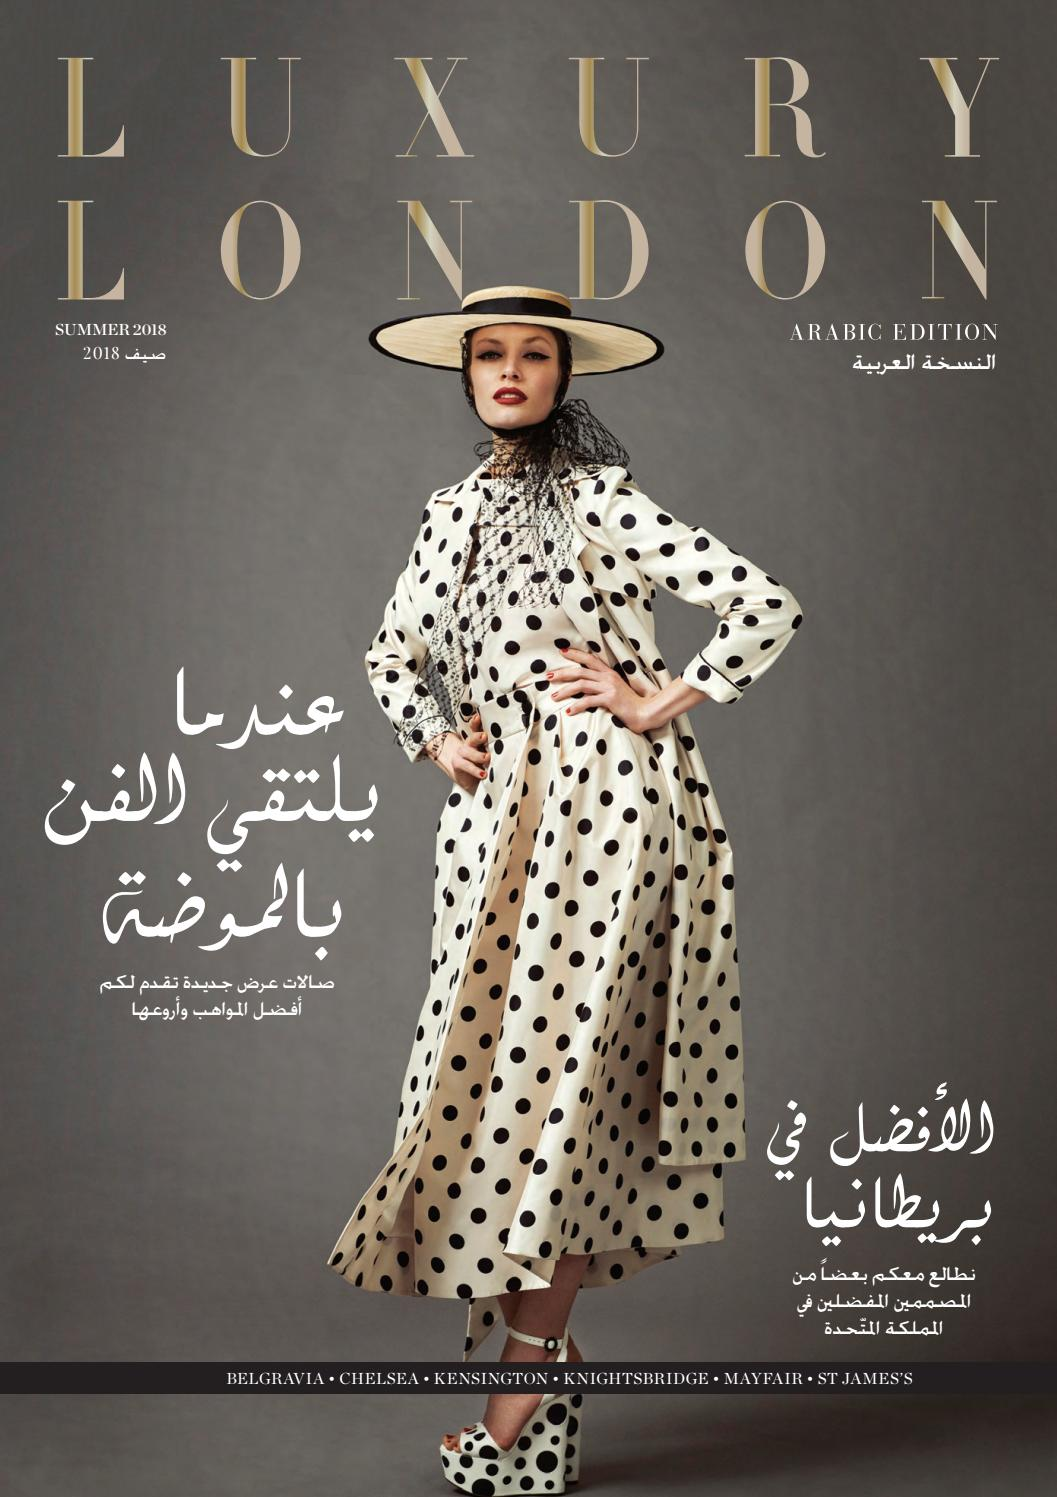 a13b050ab938a Luxury London Arabic Summer 2018 by Luxury London Media - issuu